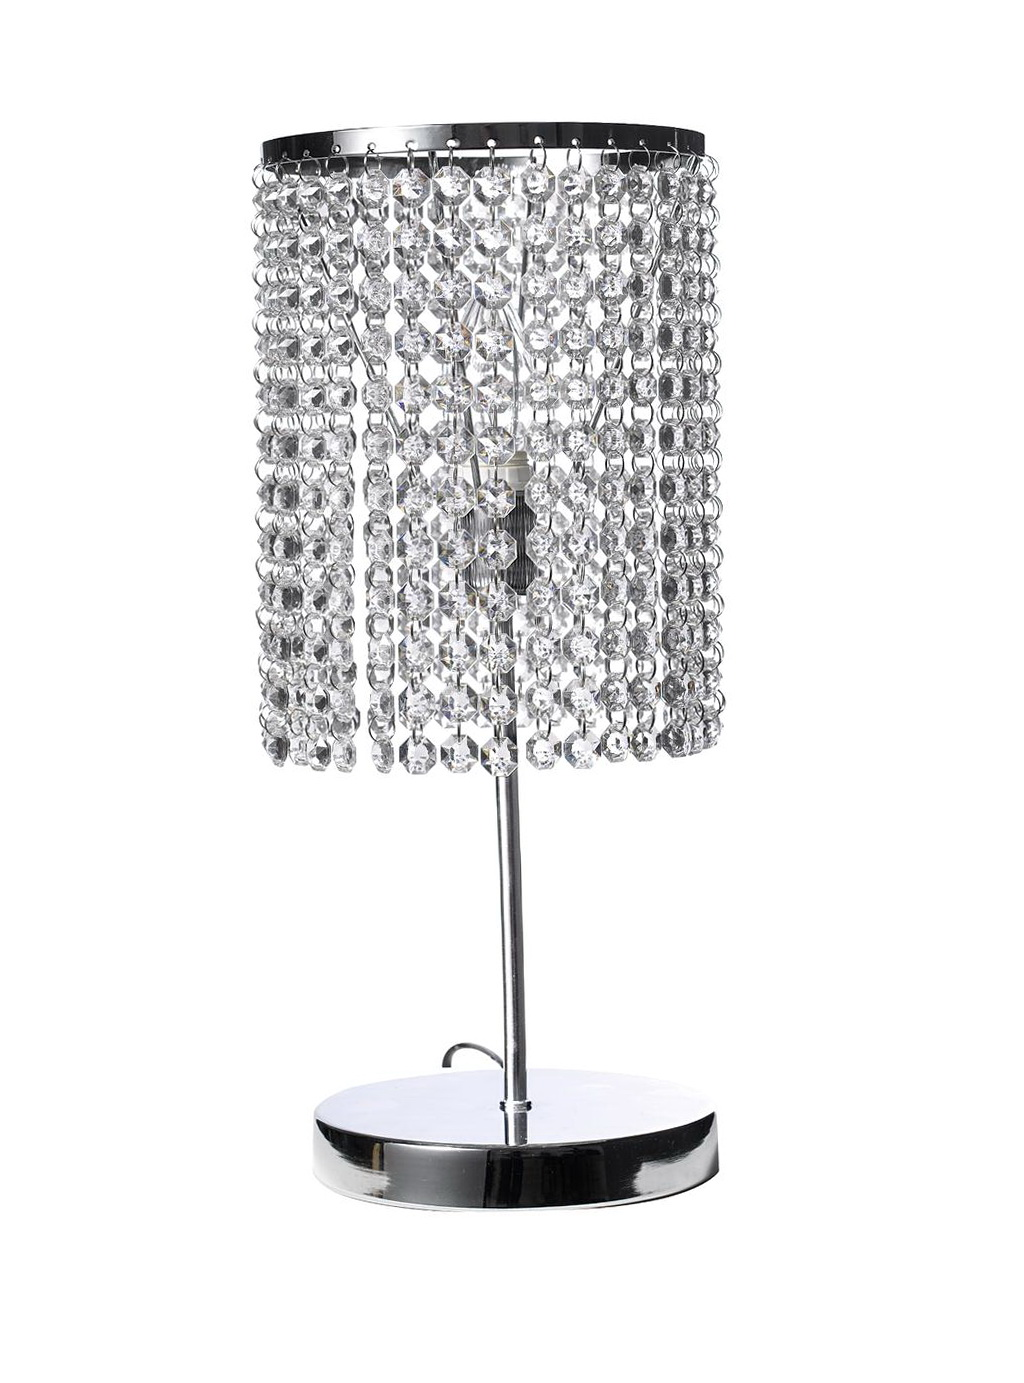 Crystal beaded table chandelier lamp home design ideas crystal beaded table chandelier lamp geotapseo Images